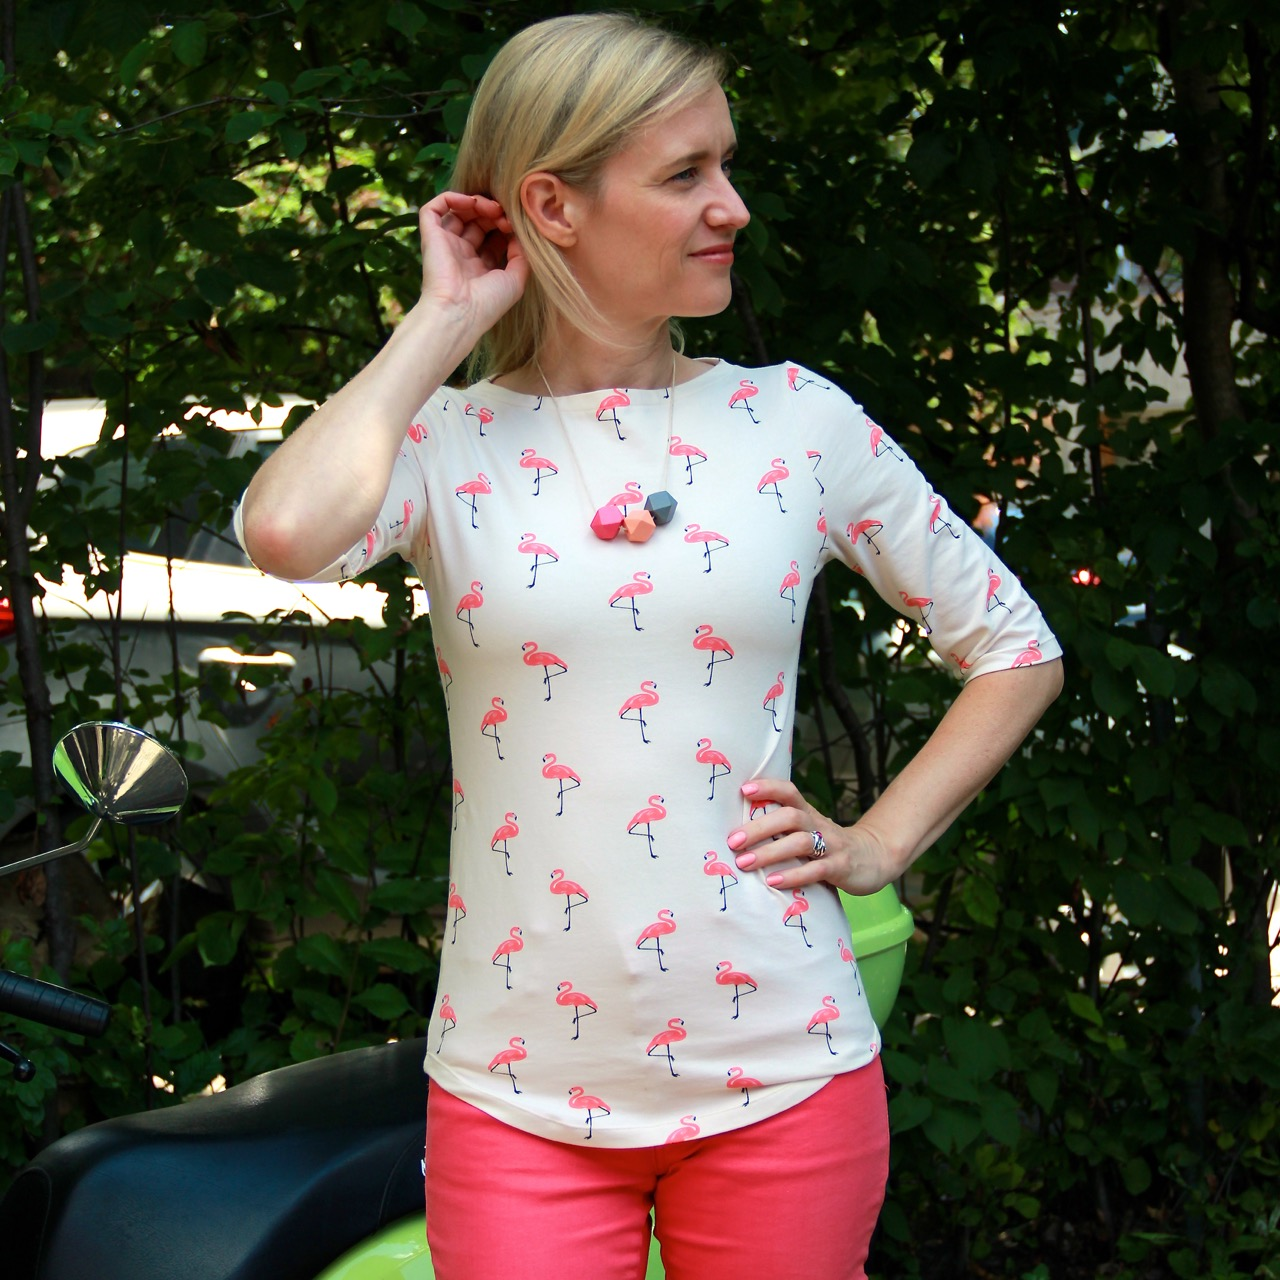 Wardrobe By Me Wardrobe Builder T-shirt with flamingos